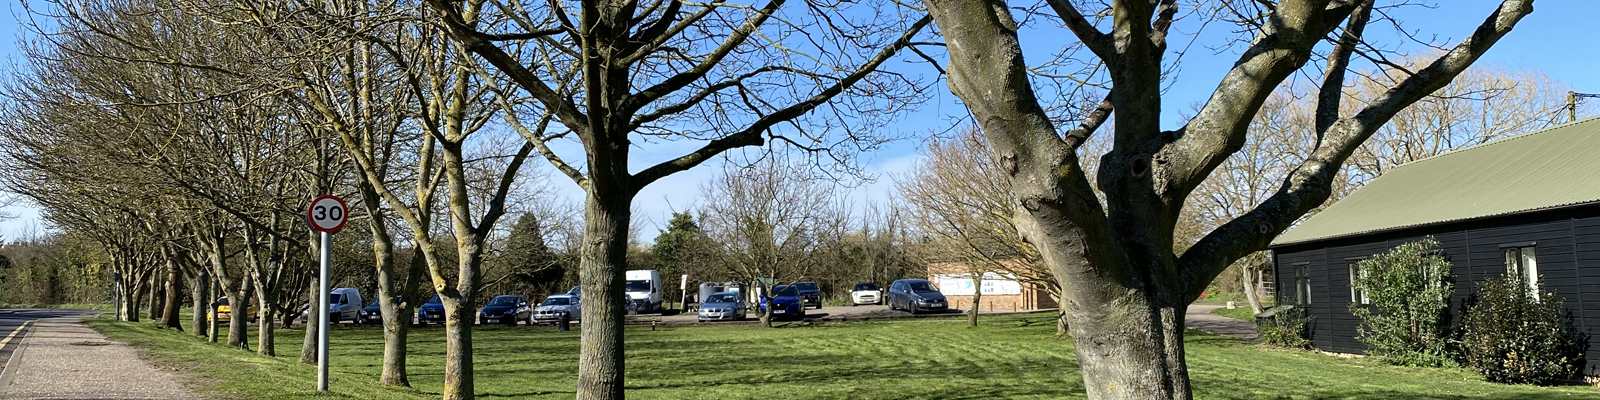 Tollesbury Parish Council, Waste And Recycling, Woodrolfe Green